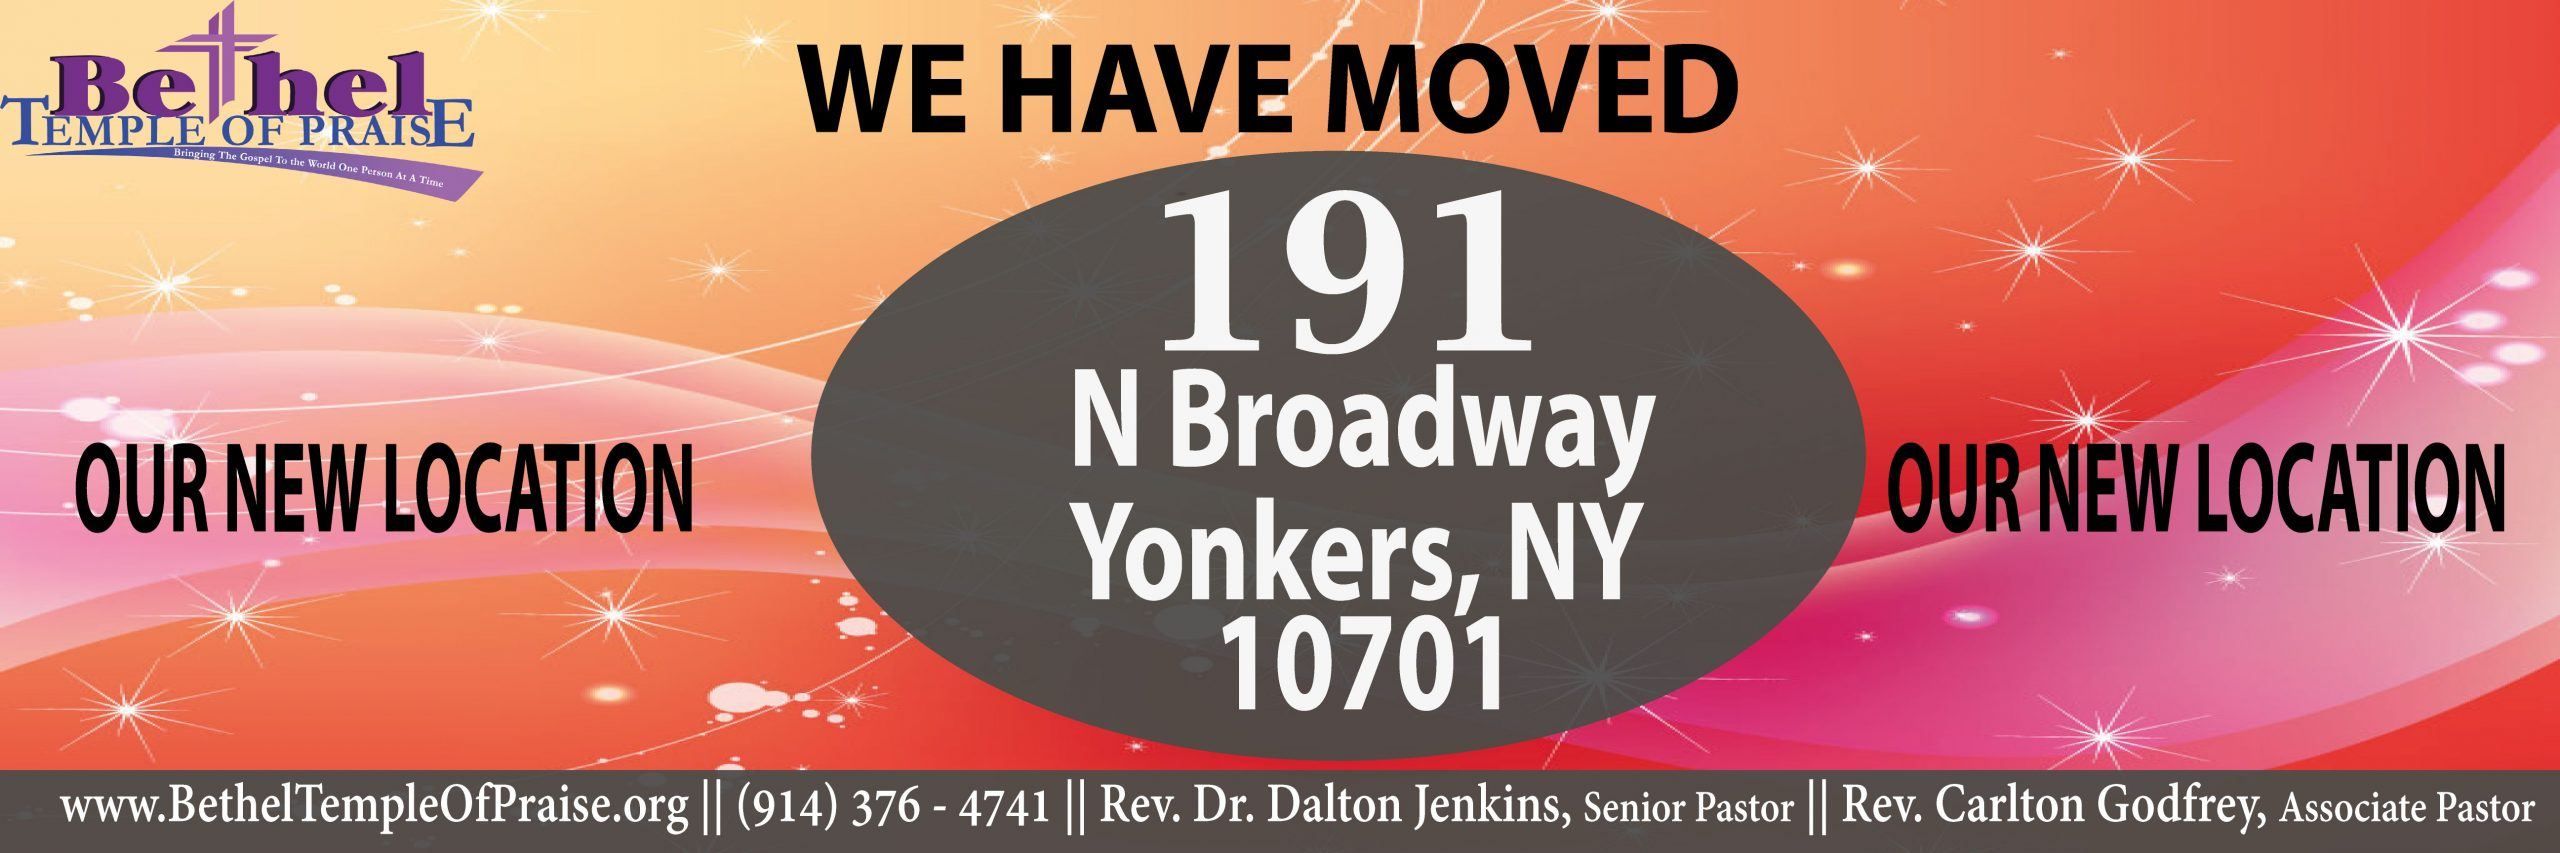 We have Moved: 191 North Broadway, Yonkers NY 10701